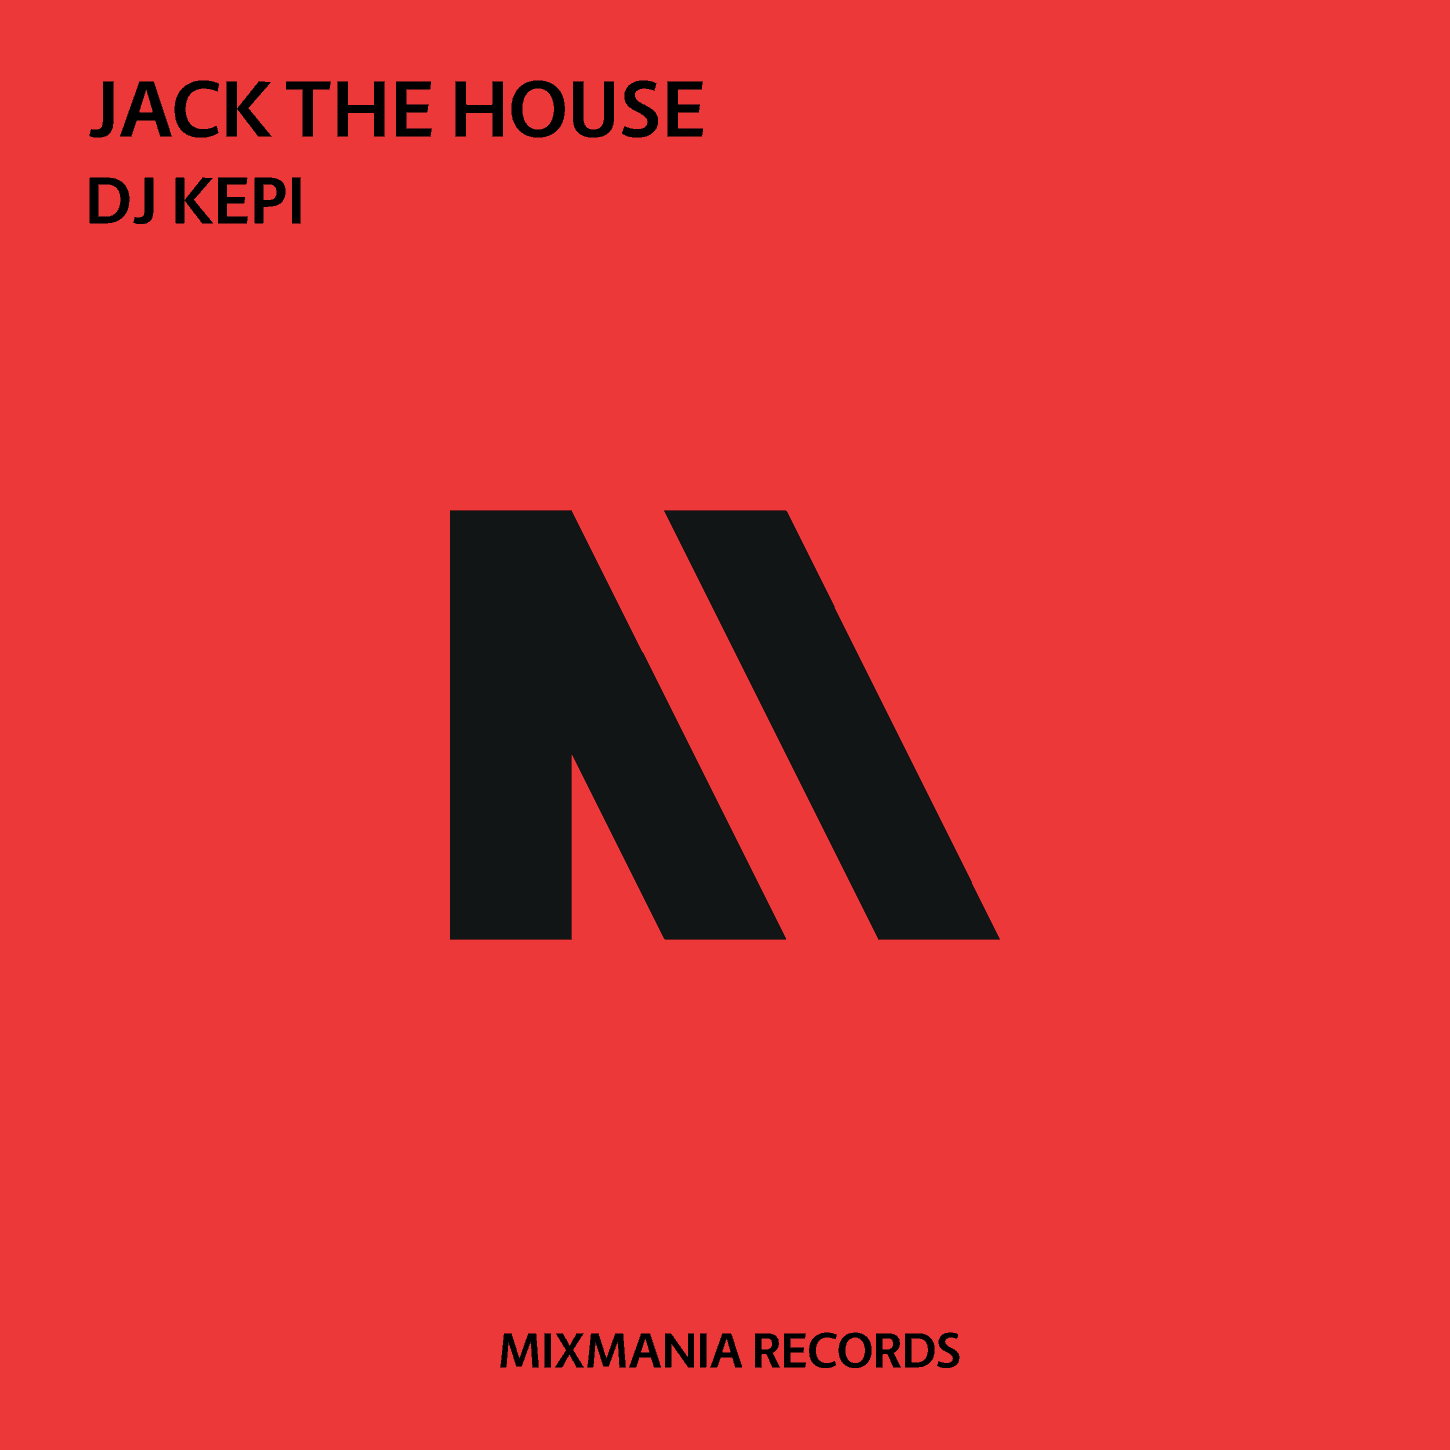 Jack The House (Original Mix) By Dj Kepi